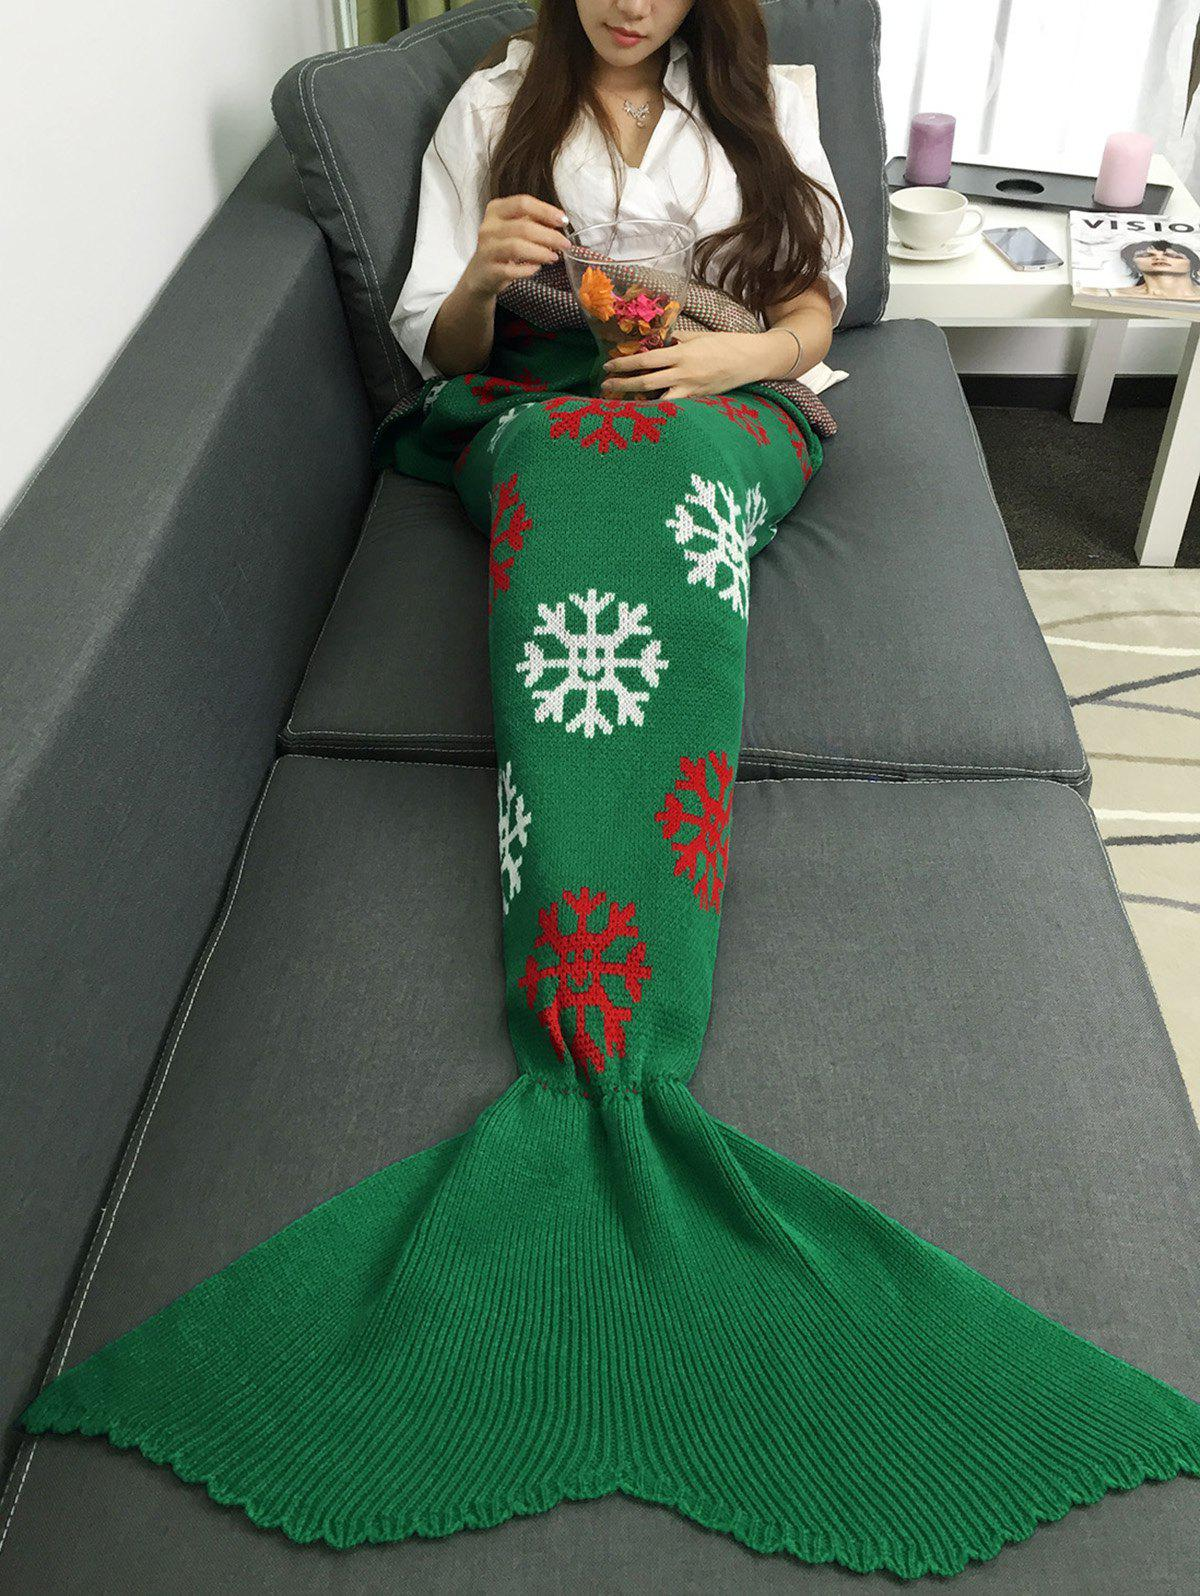 Unique Christmas Snows Design Knitted Mermaid Tail Blanket